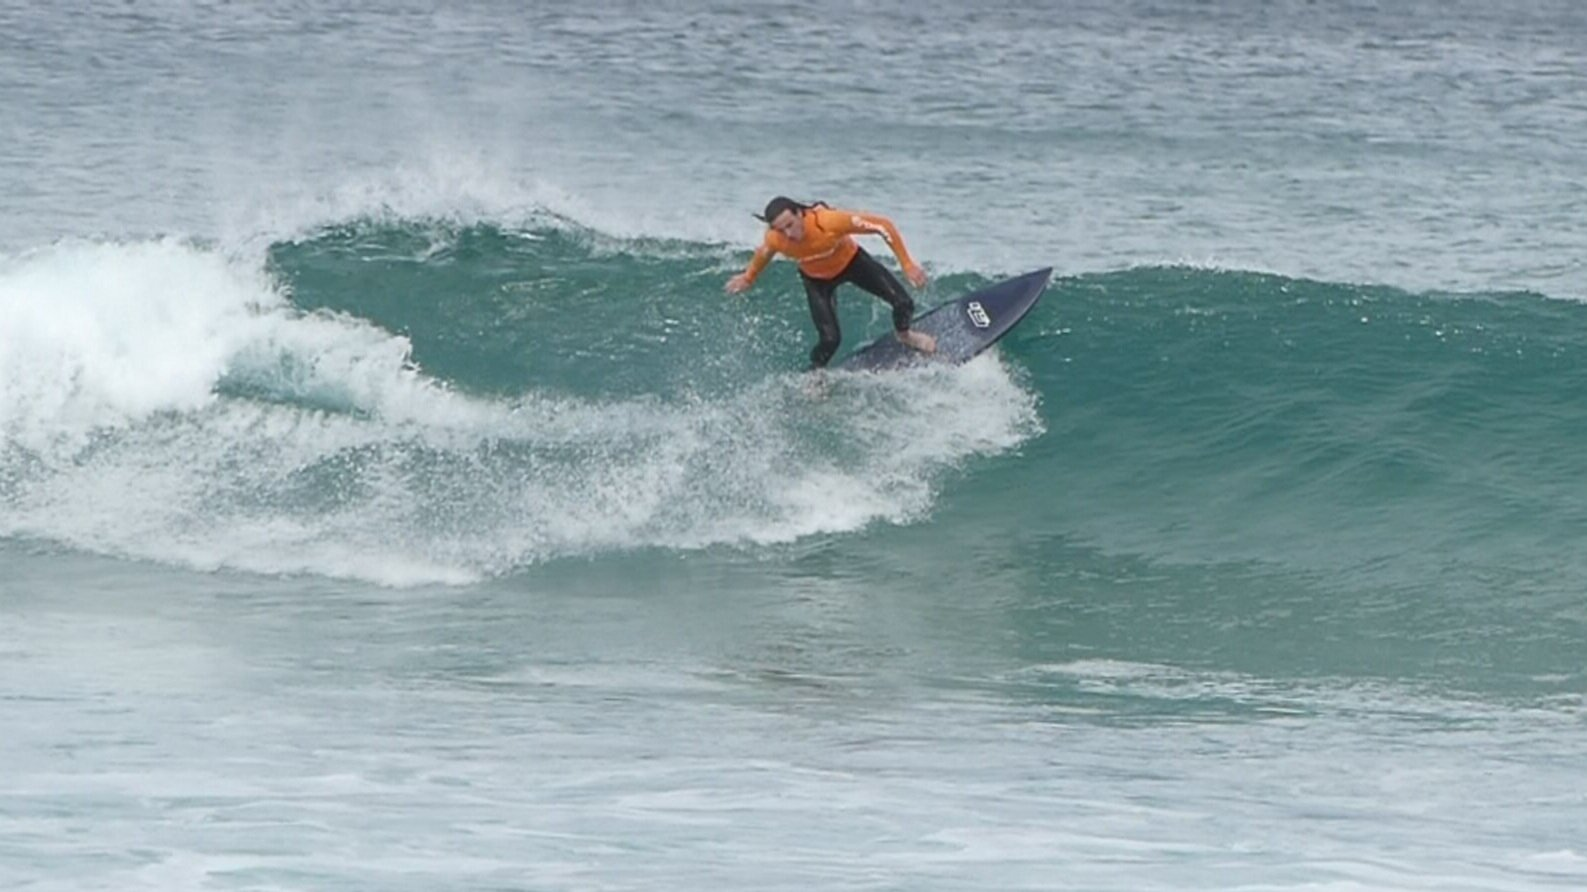 IMPROVE YOUR SURFING - + Individual tailored program+ Intermediate level surfersCOACHING + VIDEO + SURF FIT + EQUIPMENT